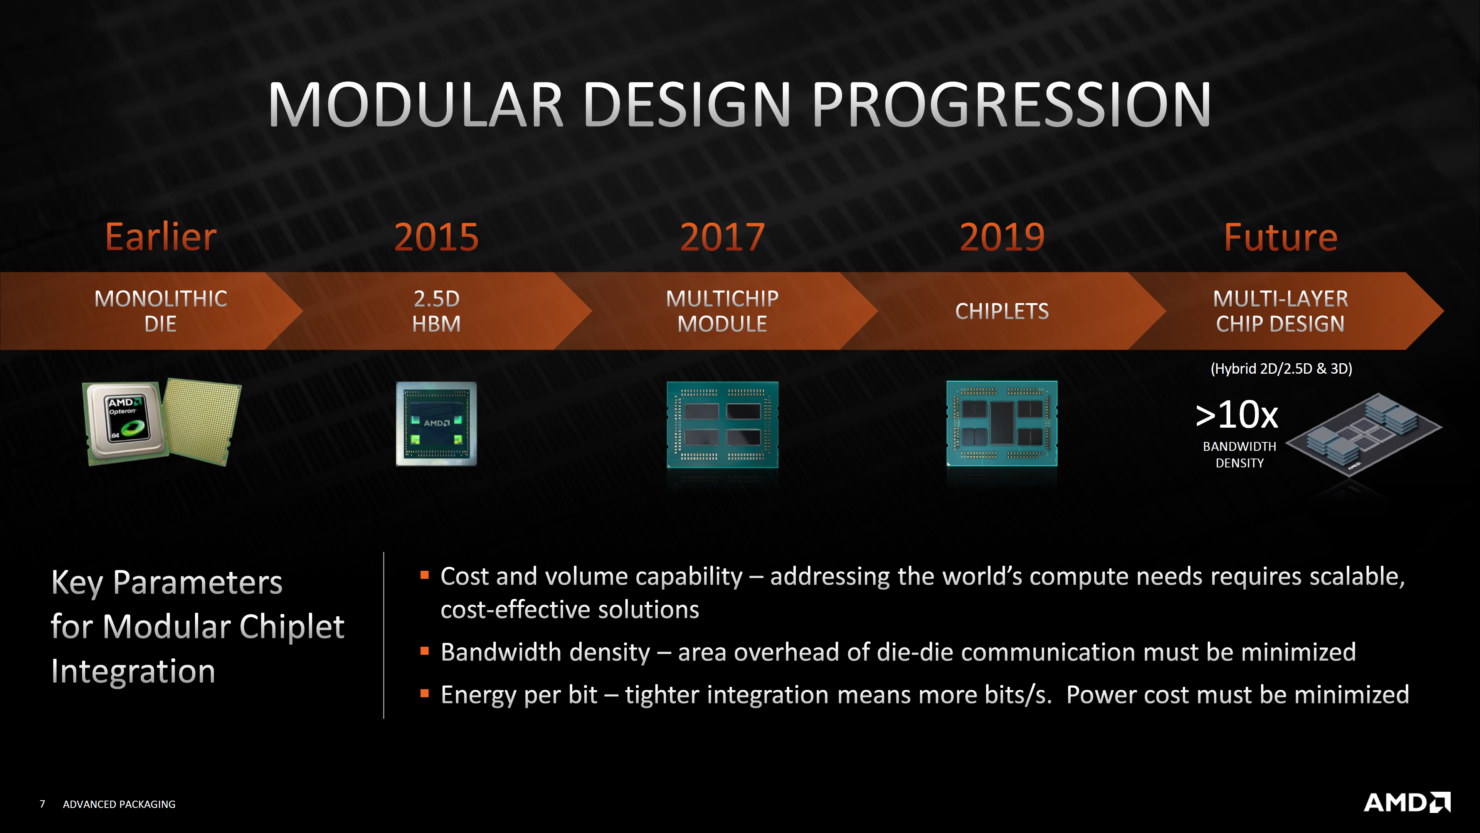 amd-advanced-3d-chiplet-packaging-3d-stacking-technologies-3d-v-cache-_6